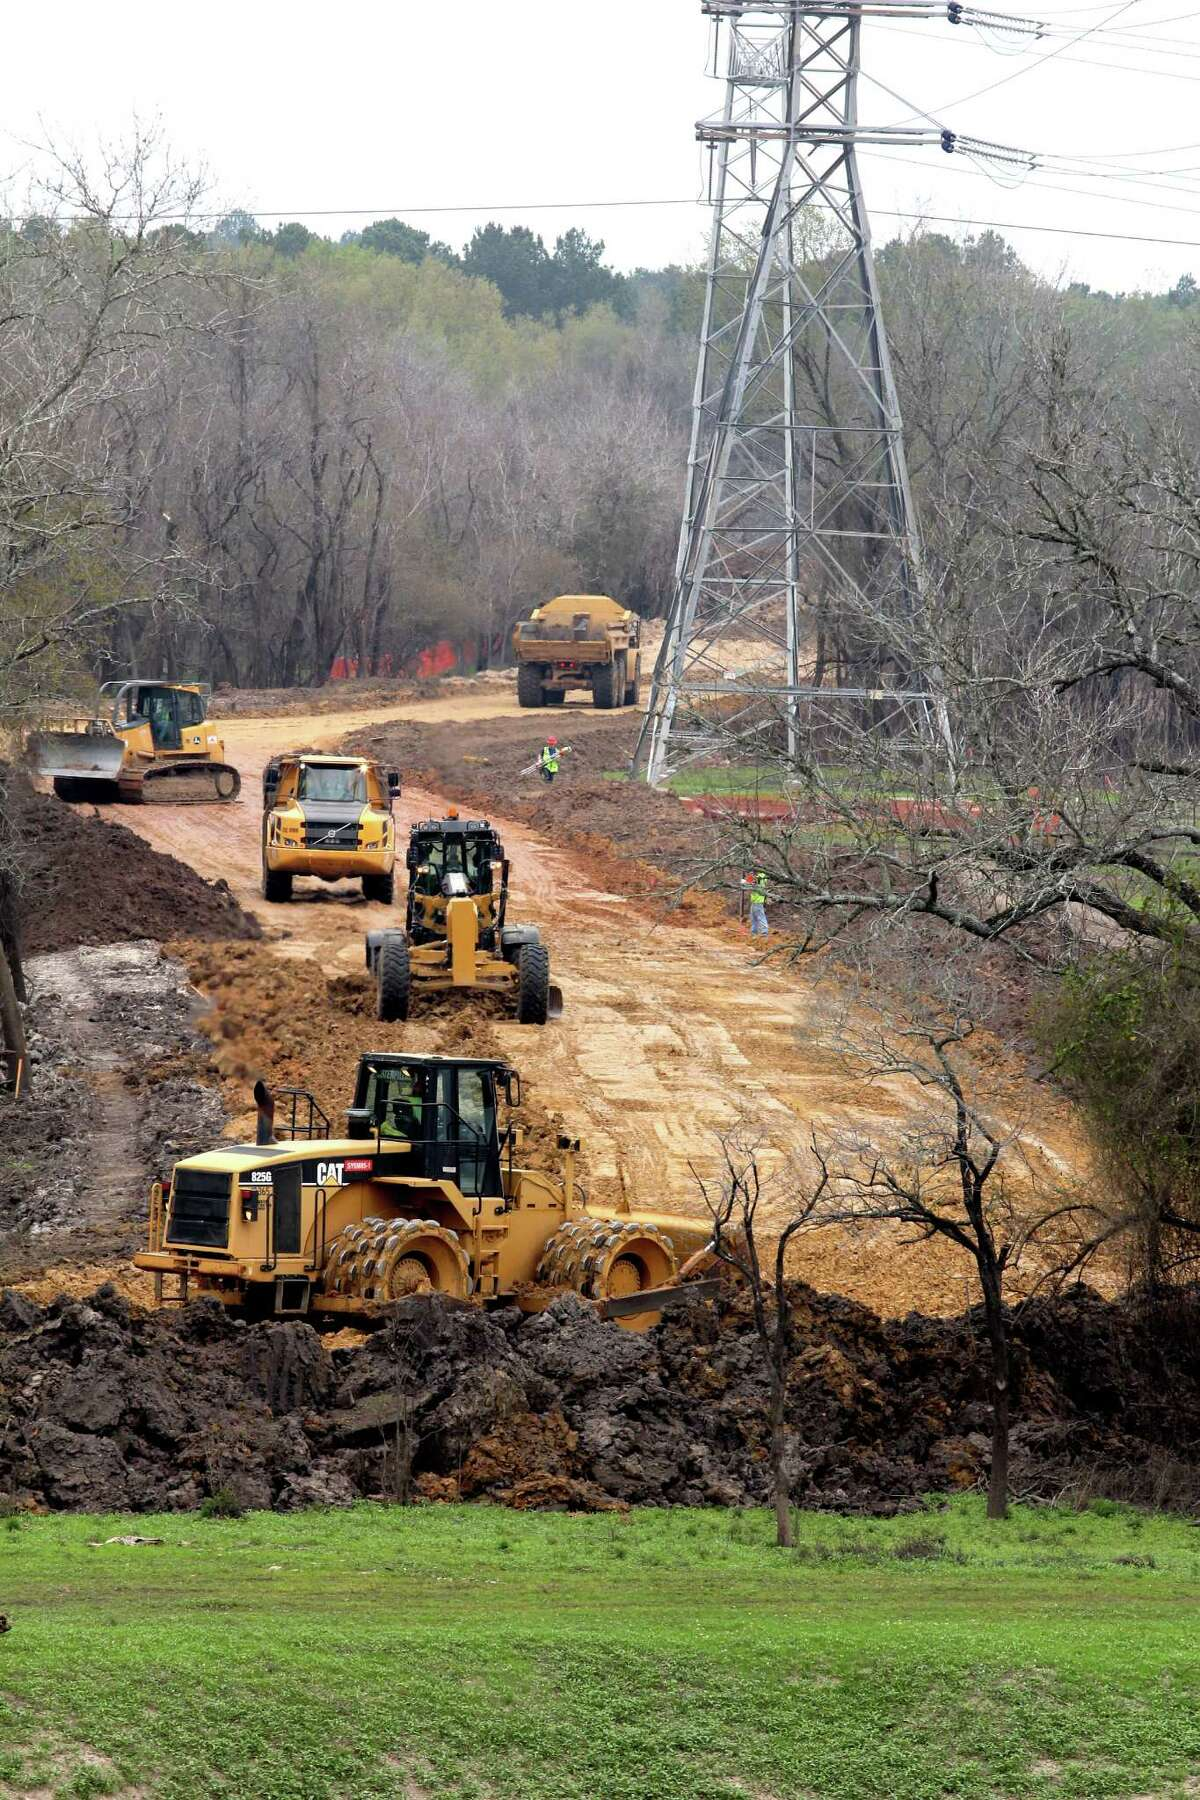 Contractors for Granite Construction Co. prepare construction haul roads so they may begin replacing water control structures at both Addicks and Barker dams.